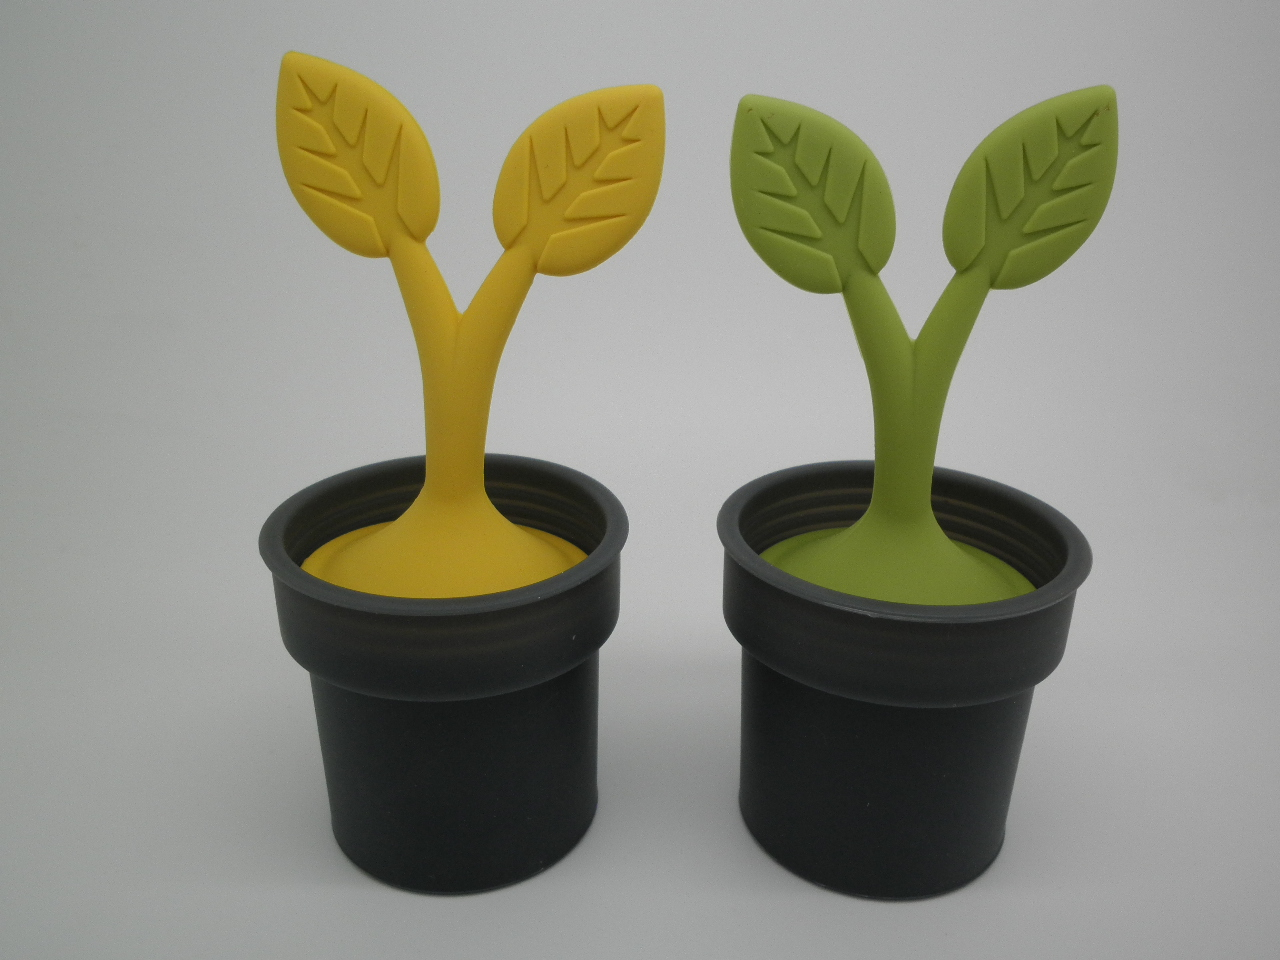 http://www.refinehksilicone.cn/data/images/product/20180417101013_102.JPG